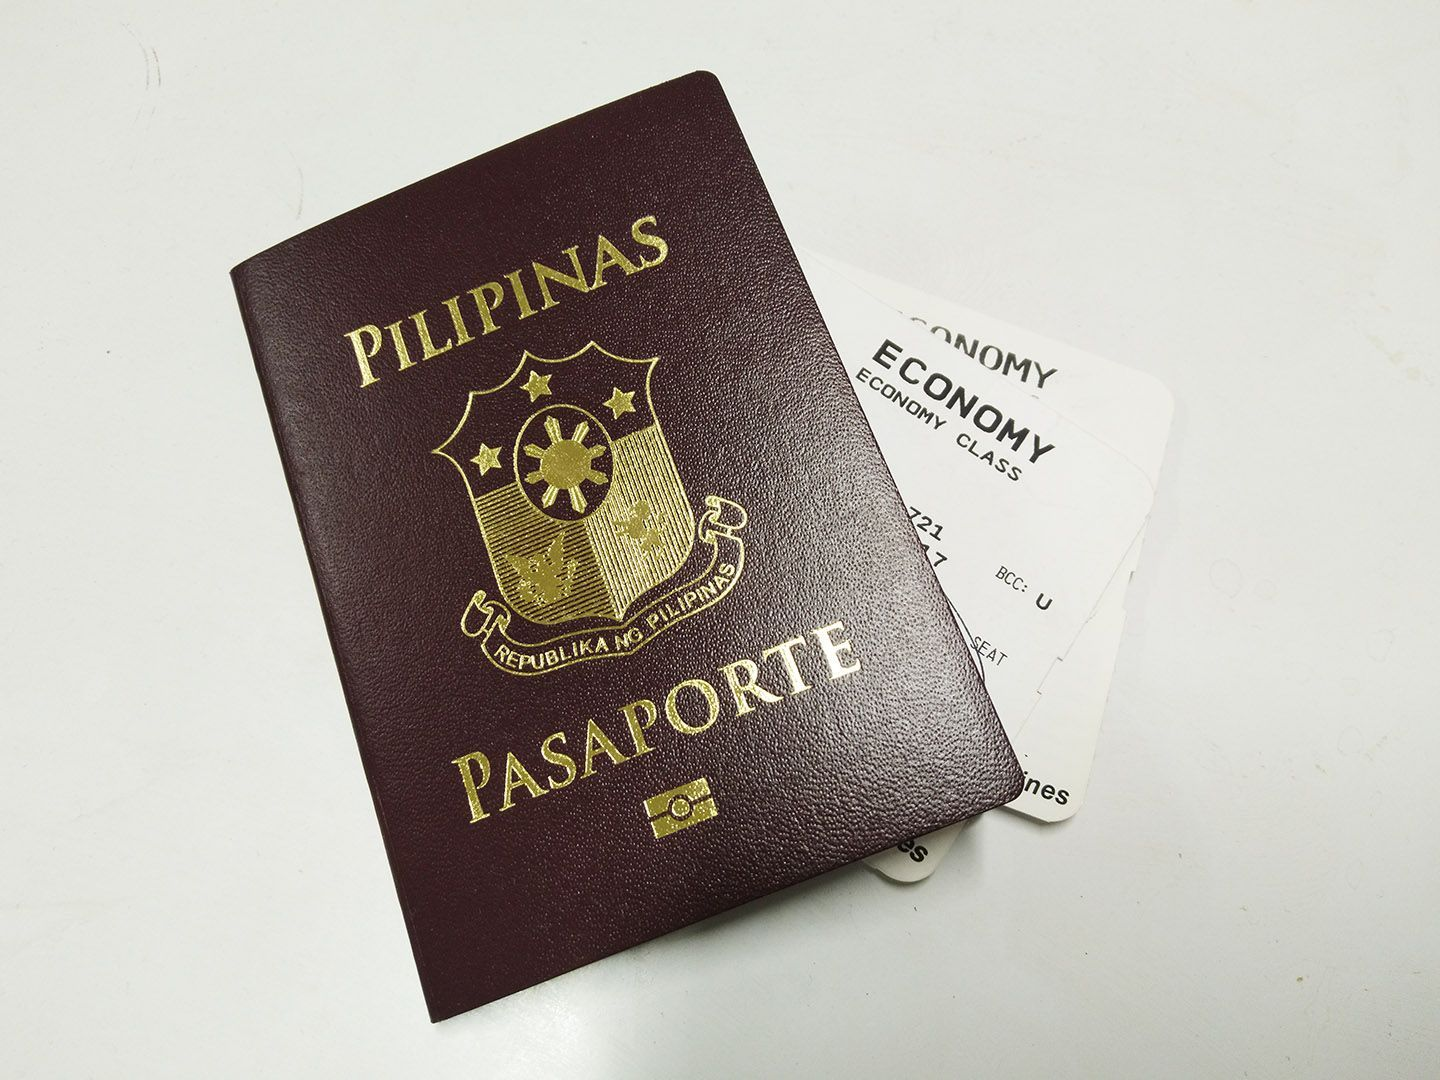 How To Apply For An Egypt Tourist Visa With Your Philippines Passport Passport Online Passport Passport Travel